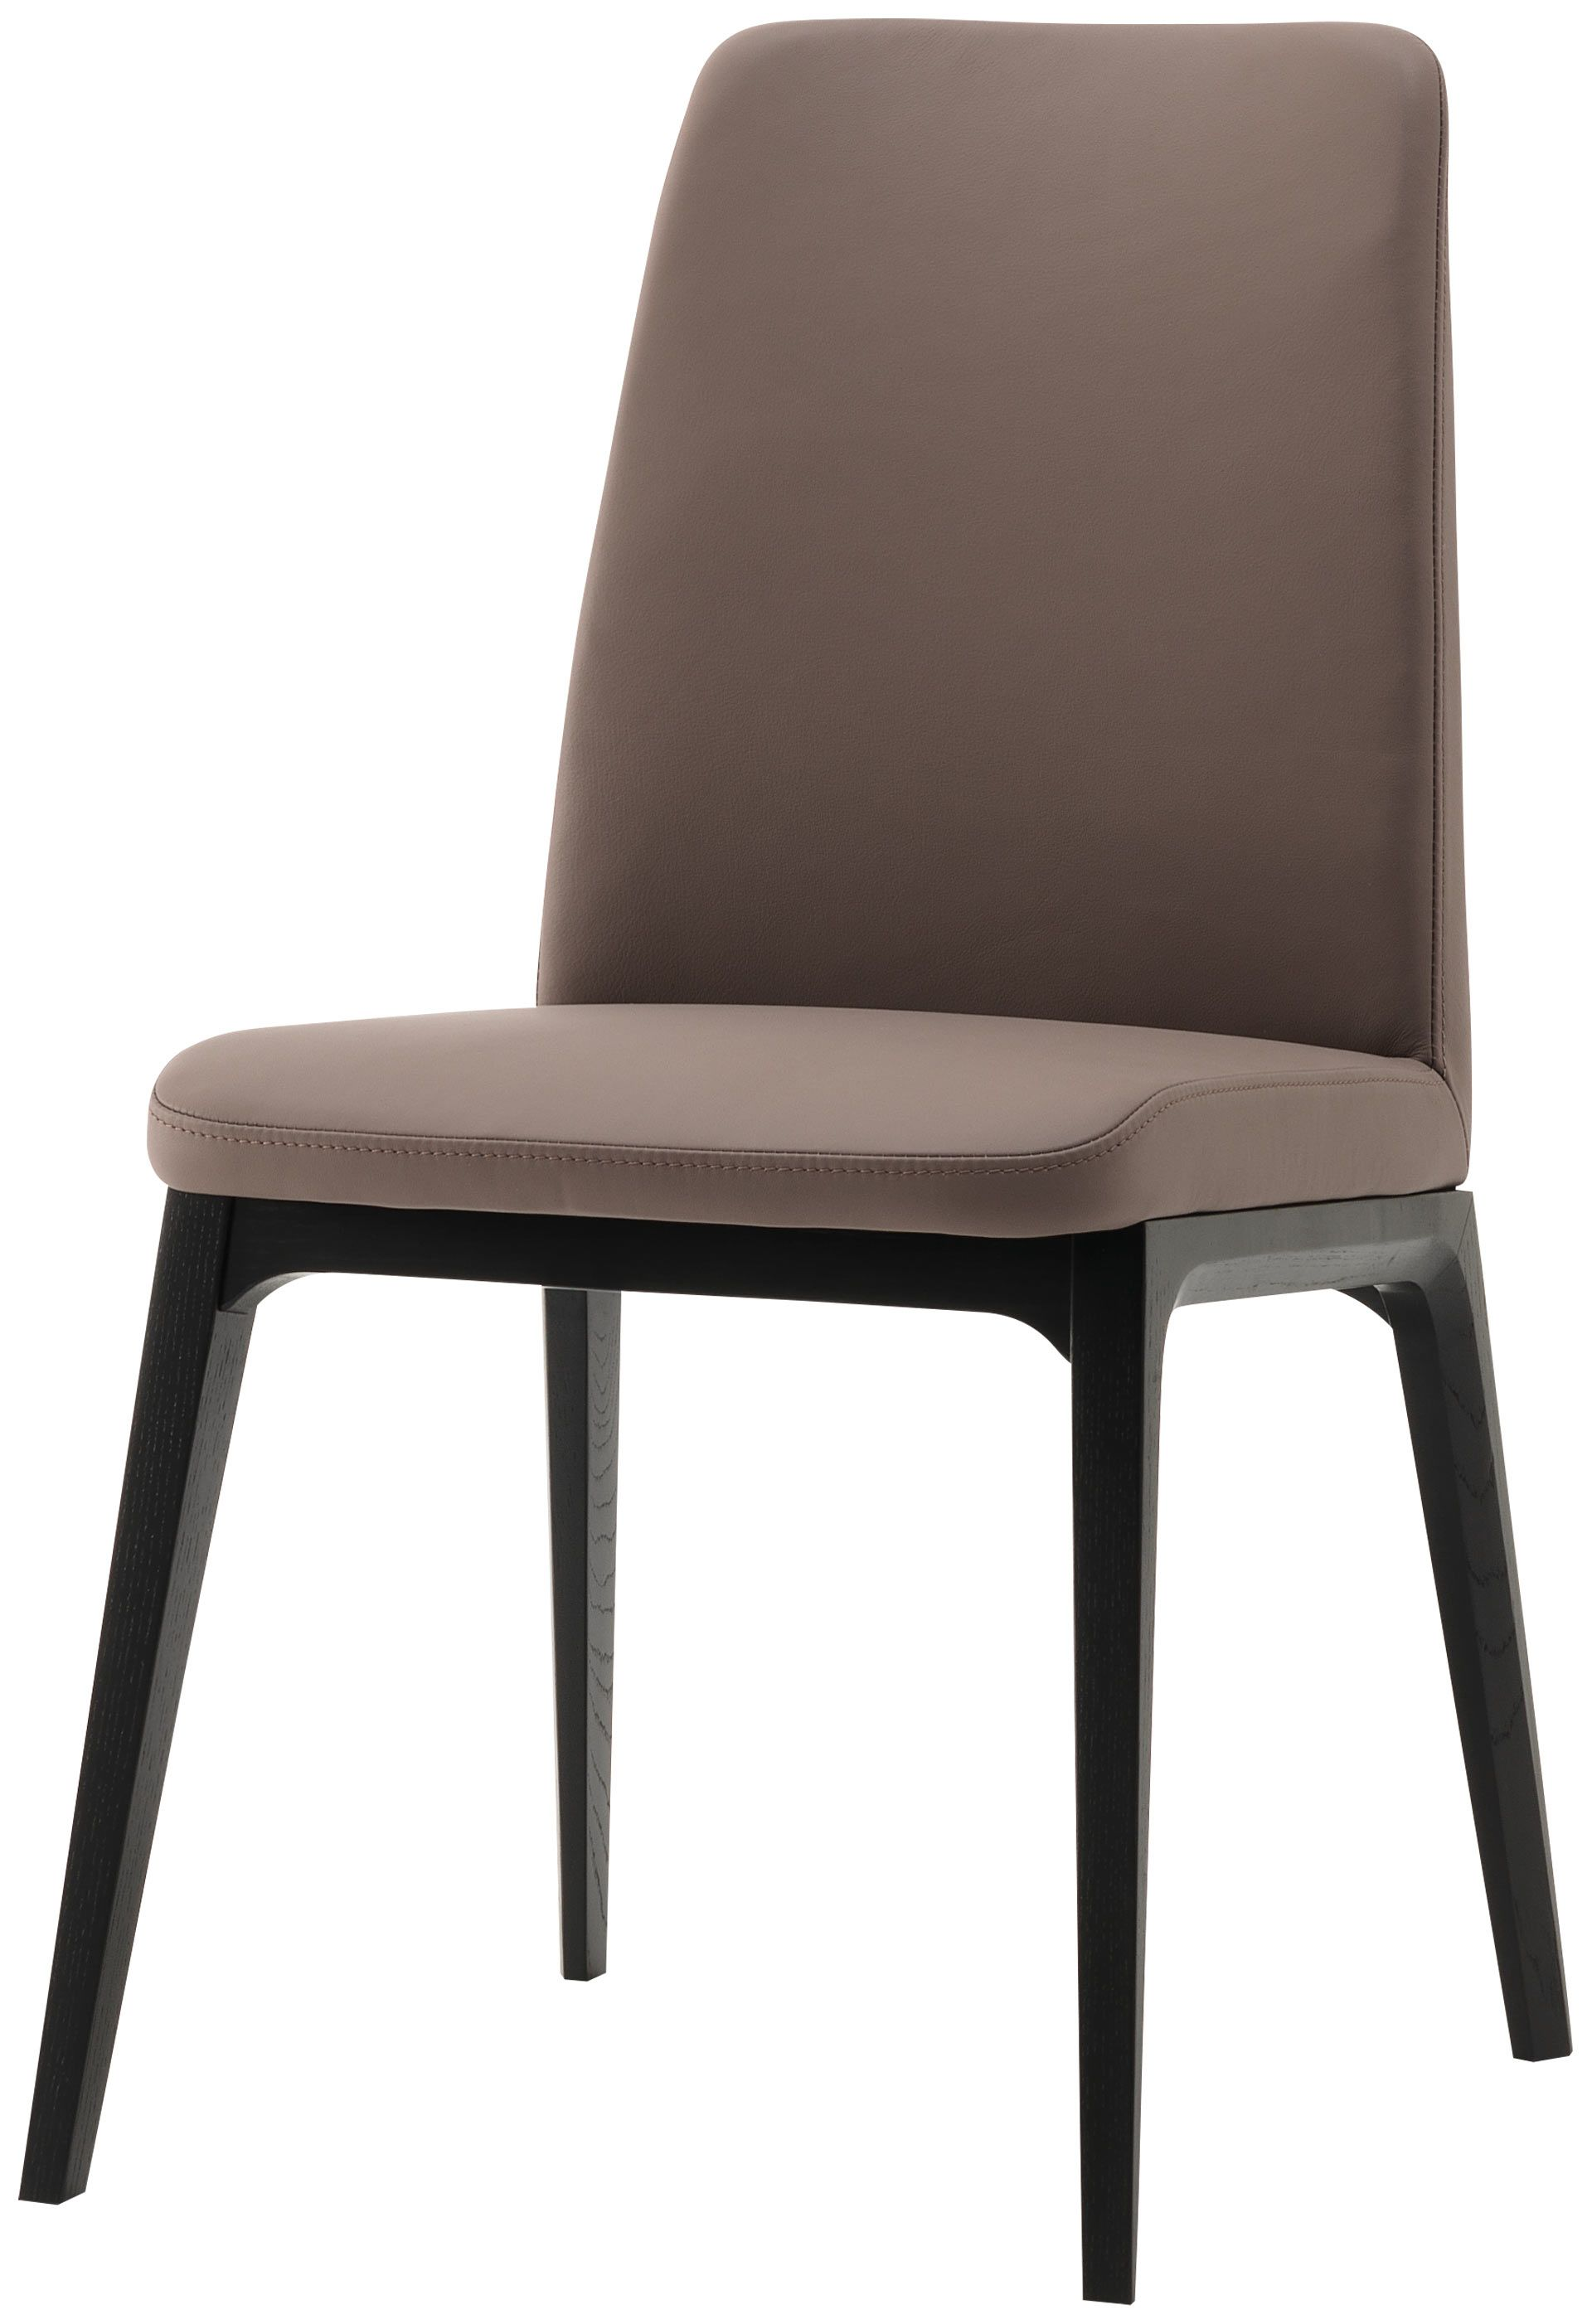 Modern Leather Dining Chairs Australia Folding Chair Covers Cheap Lausanne Bahia Stone Black Stained Oak Veneer Boconcept Furniture Sydney